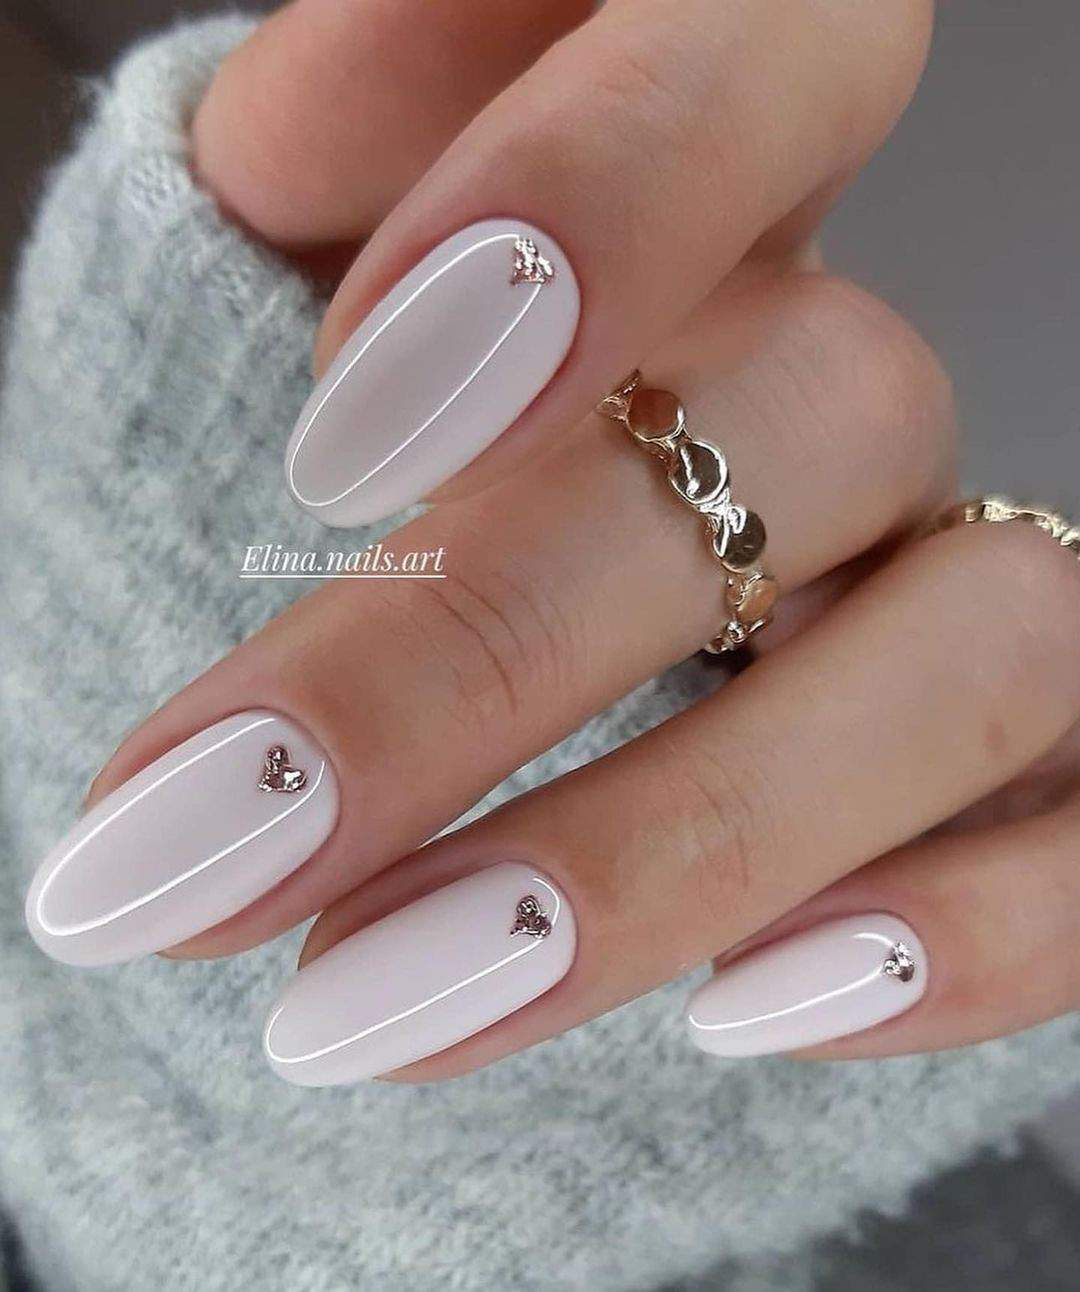 The 100+ Best Nail Designs Trends And Ideas In 2021 images 4